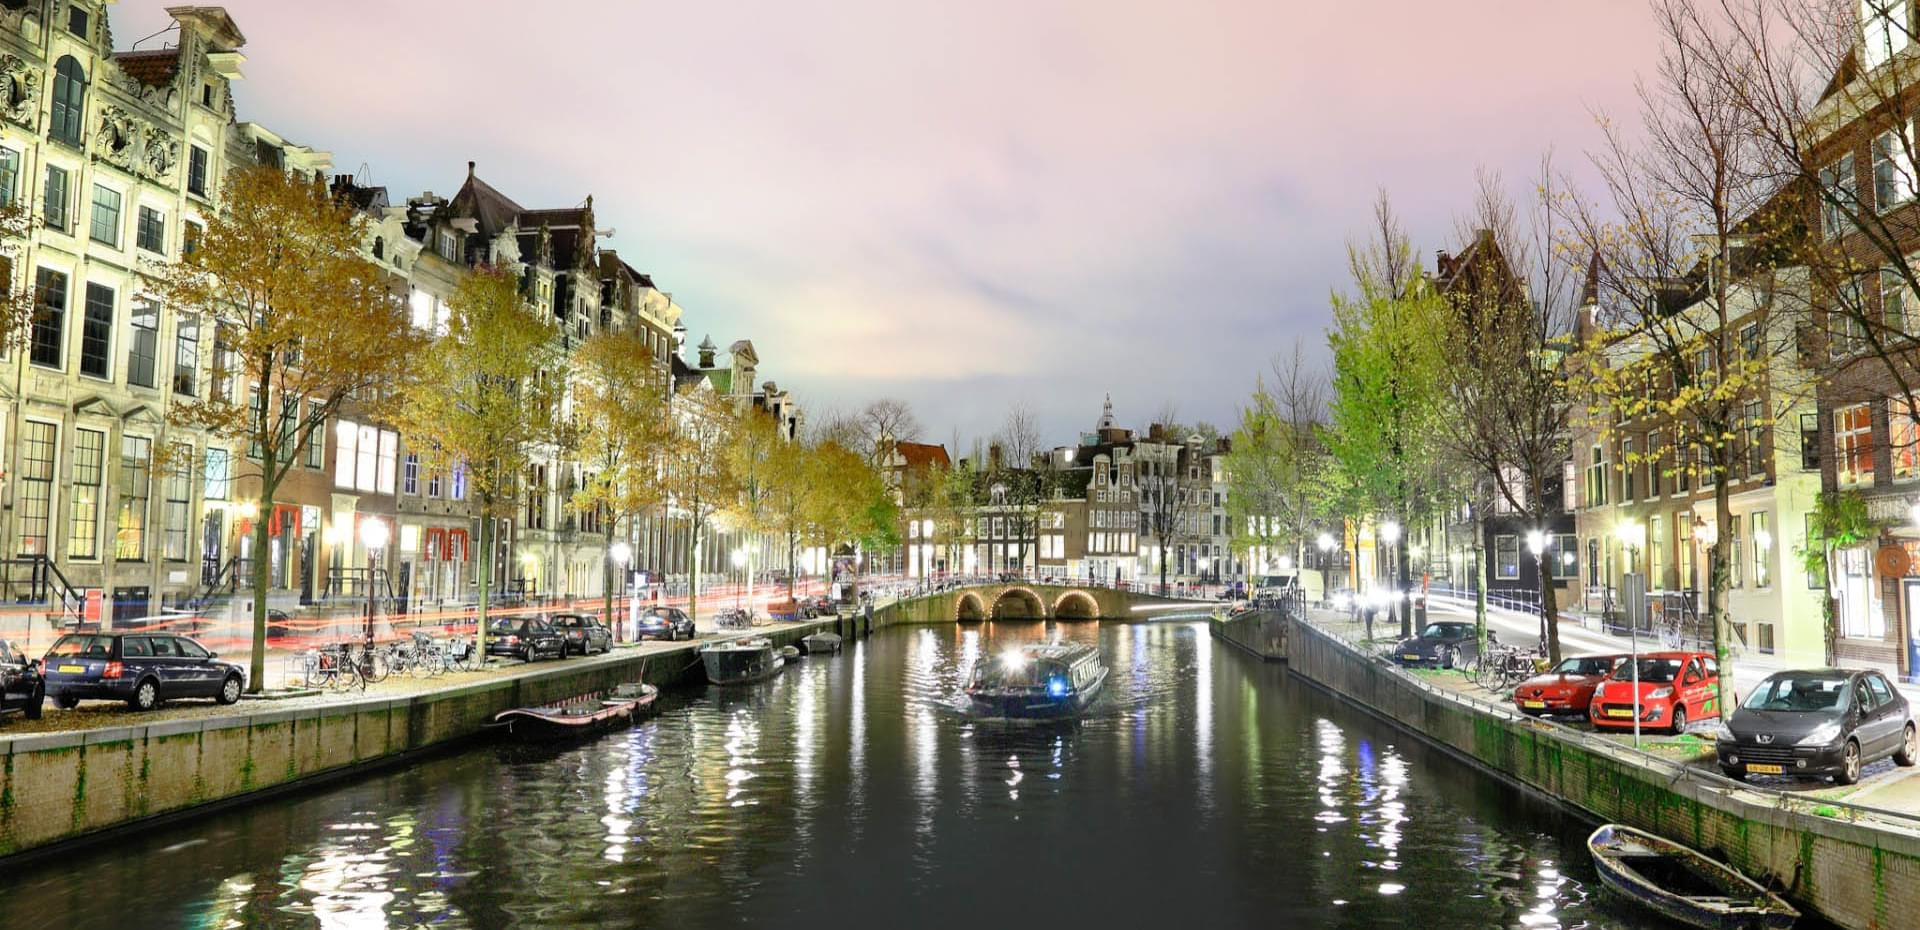 Amsterdam canal background